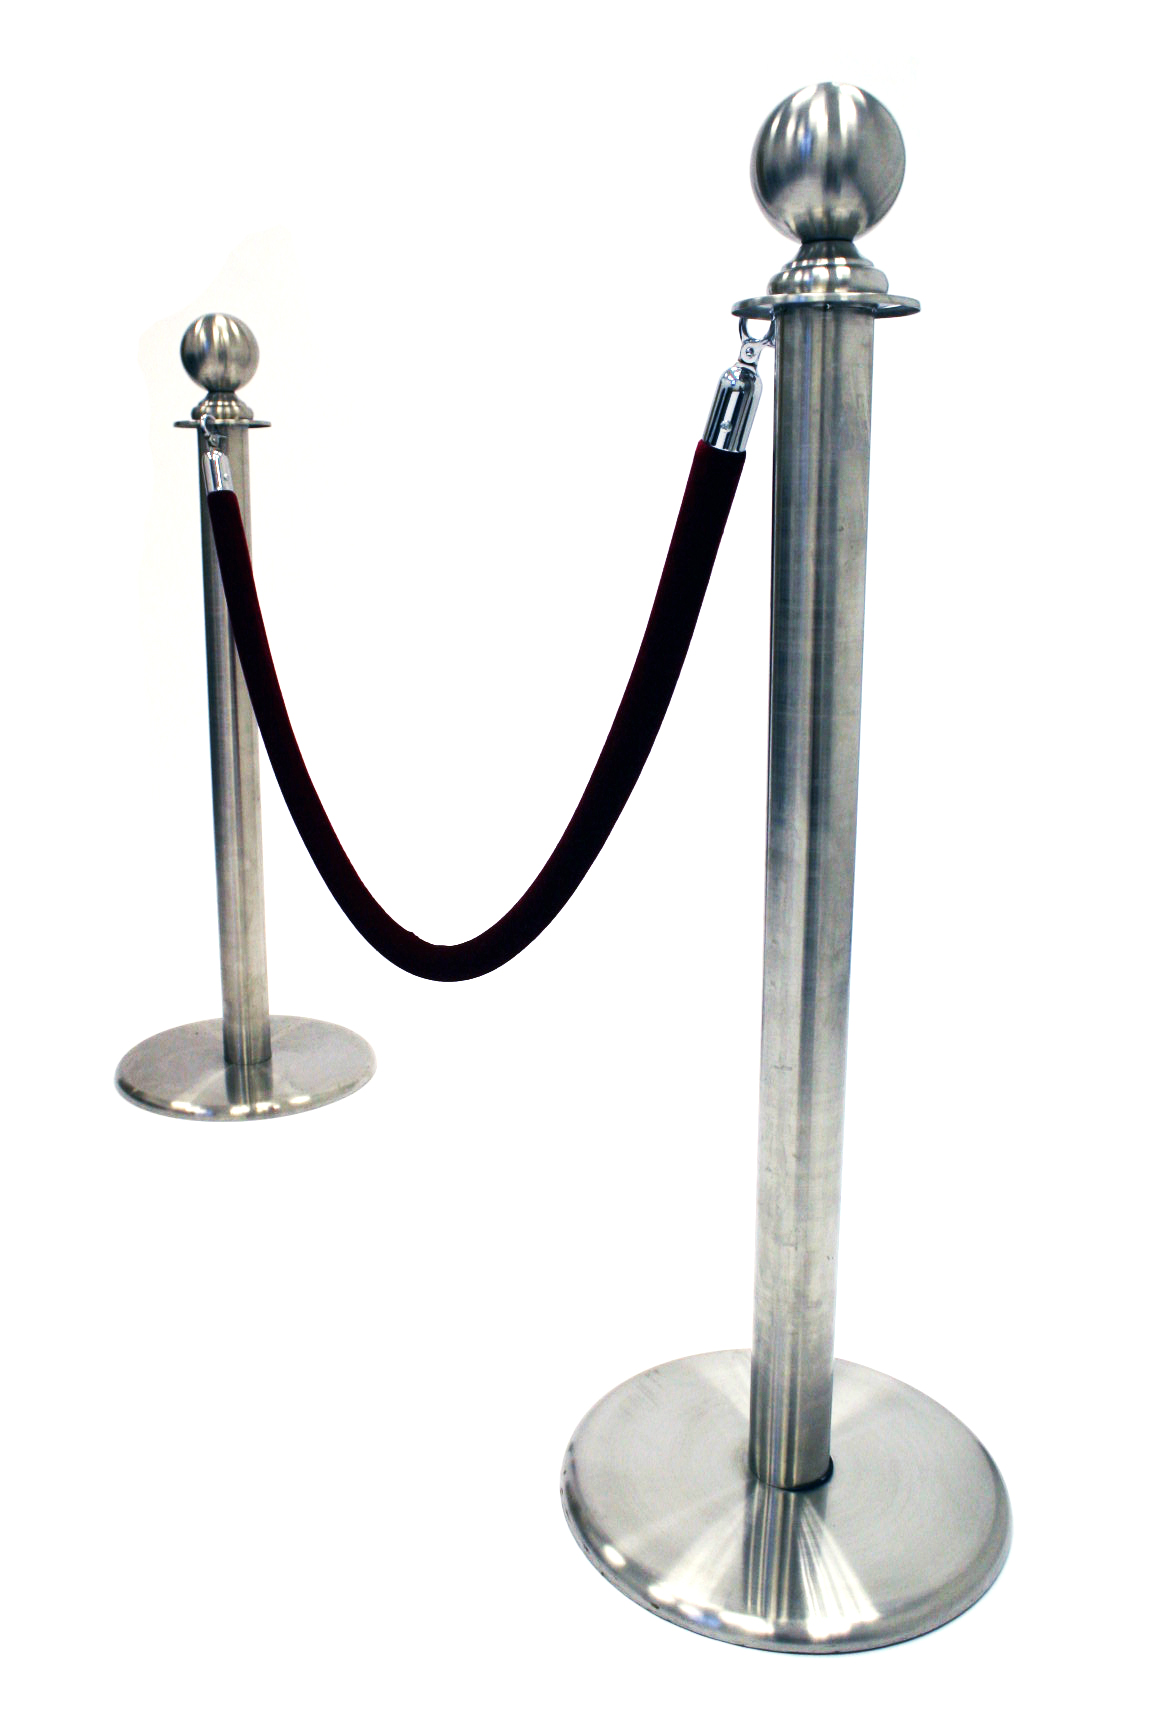 Stainless Steel Barrier Posts - Ball Top Barrier Posts - BE Furniture Sales